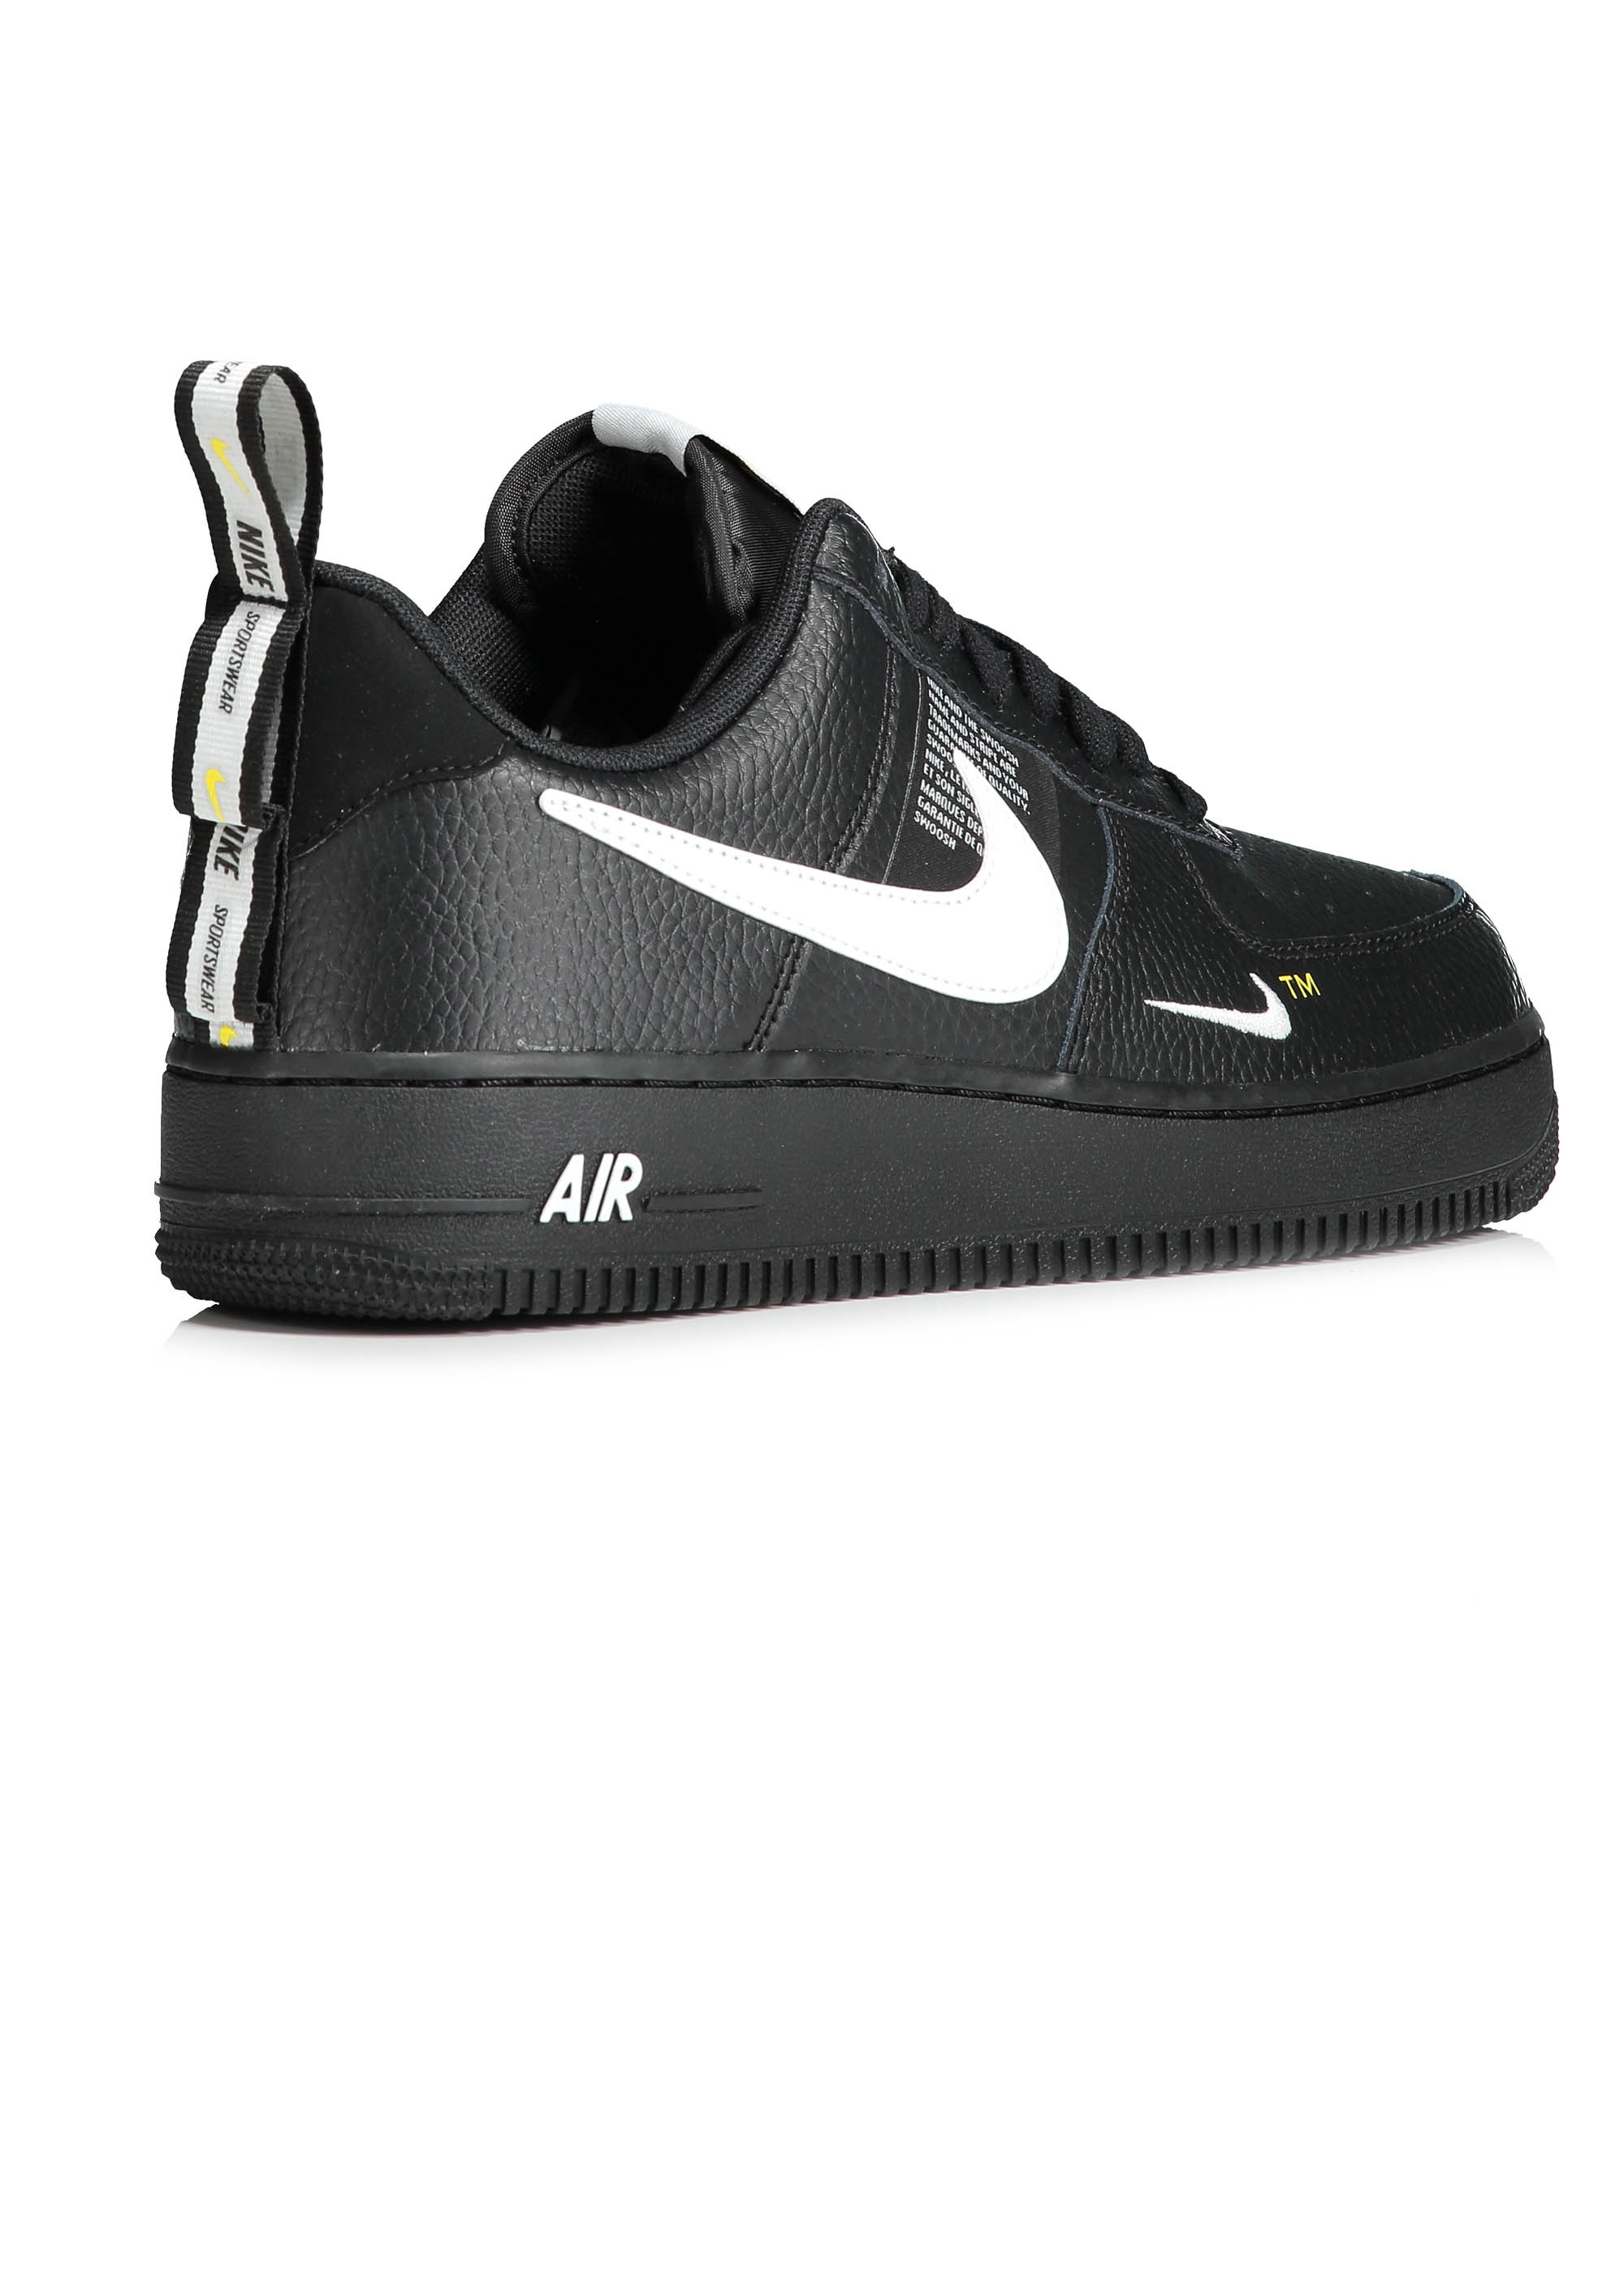 91414165c606 Nike Footwear Air Force 1 07 LV8 Utility - Black   White - Triads ...